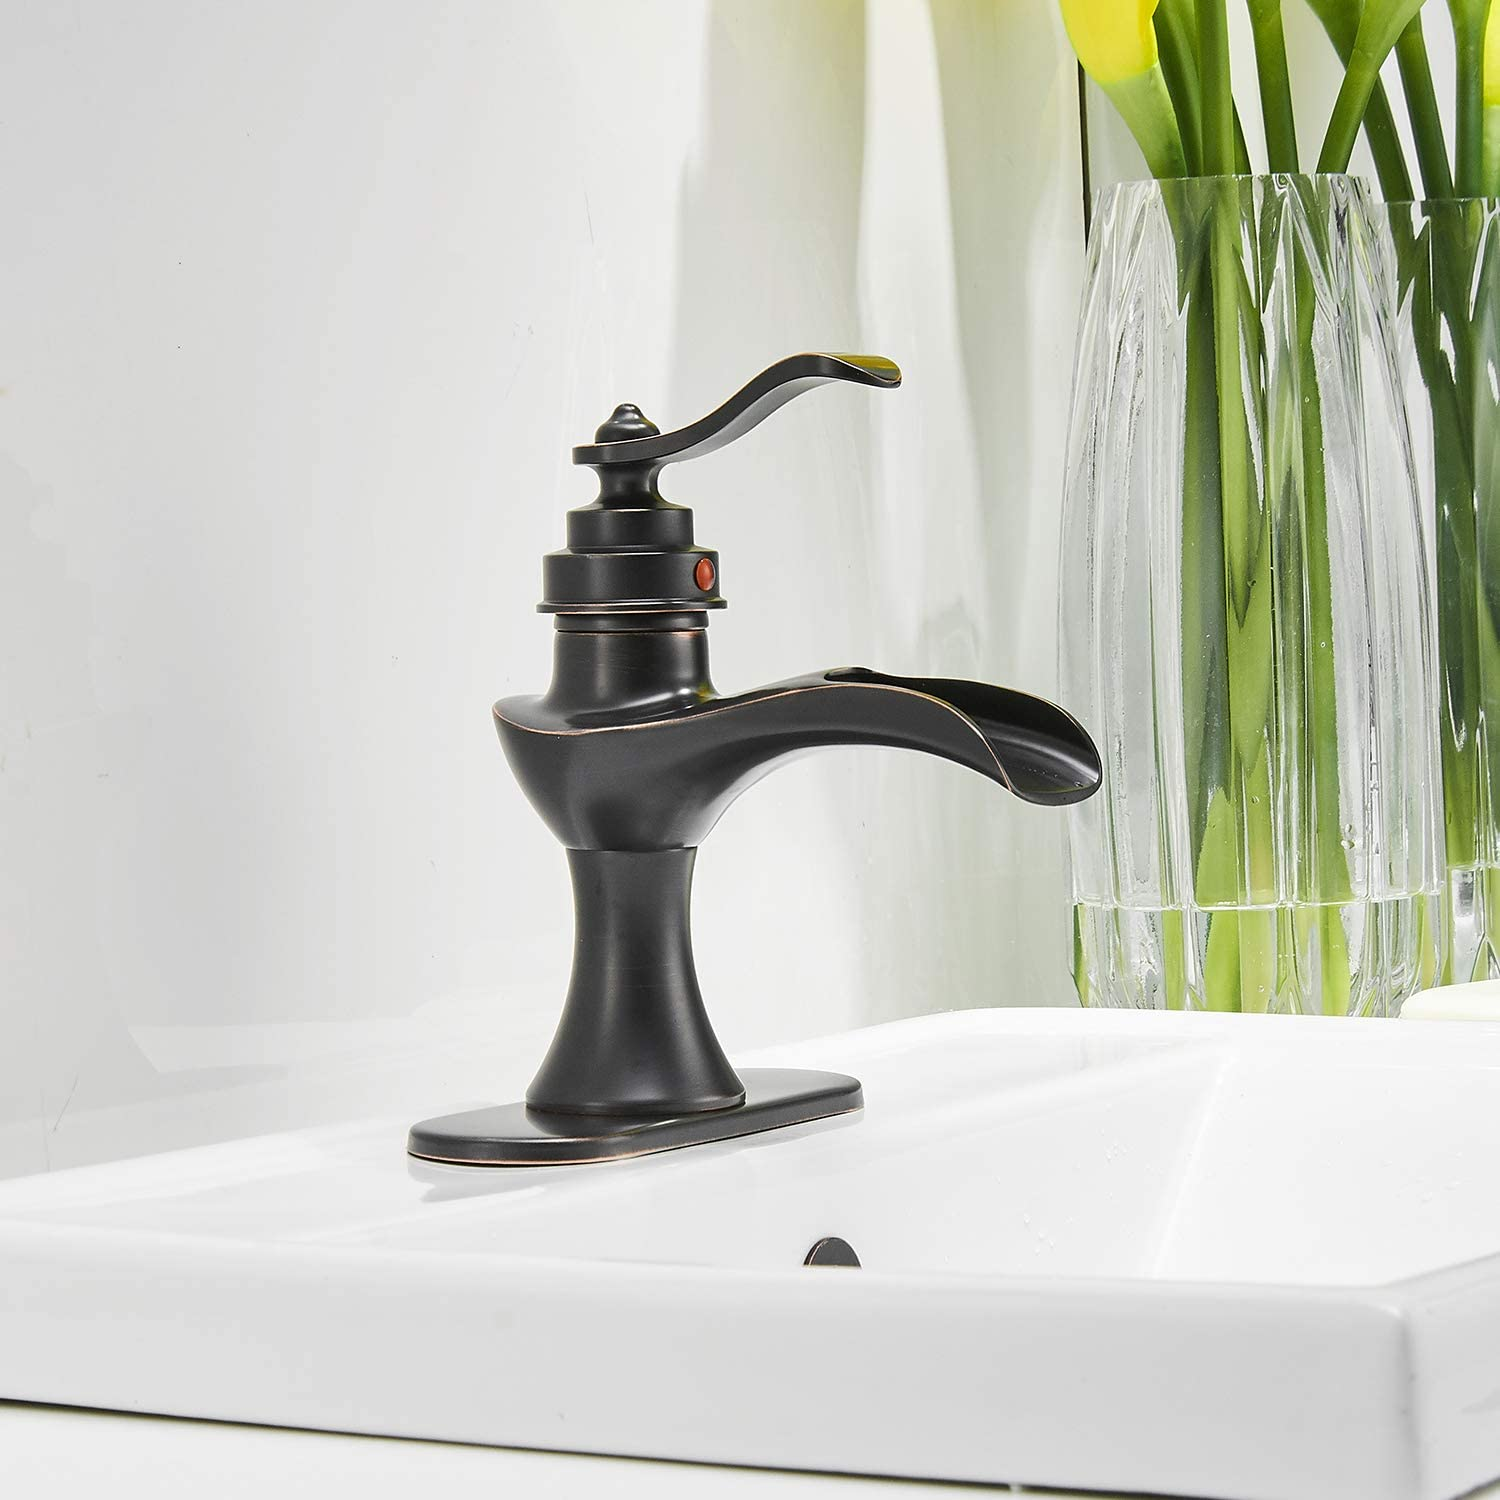 Buy Waterfall Bathroom Faucet Oil Rubbed Bronze Sink With Pop Up Drain Stopper Faucets Single Hole Rustic Vanity Farmhouse Overflow One Handle Bath Black Commercial Assembly Lead Free By Bathadore Online In Poland